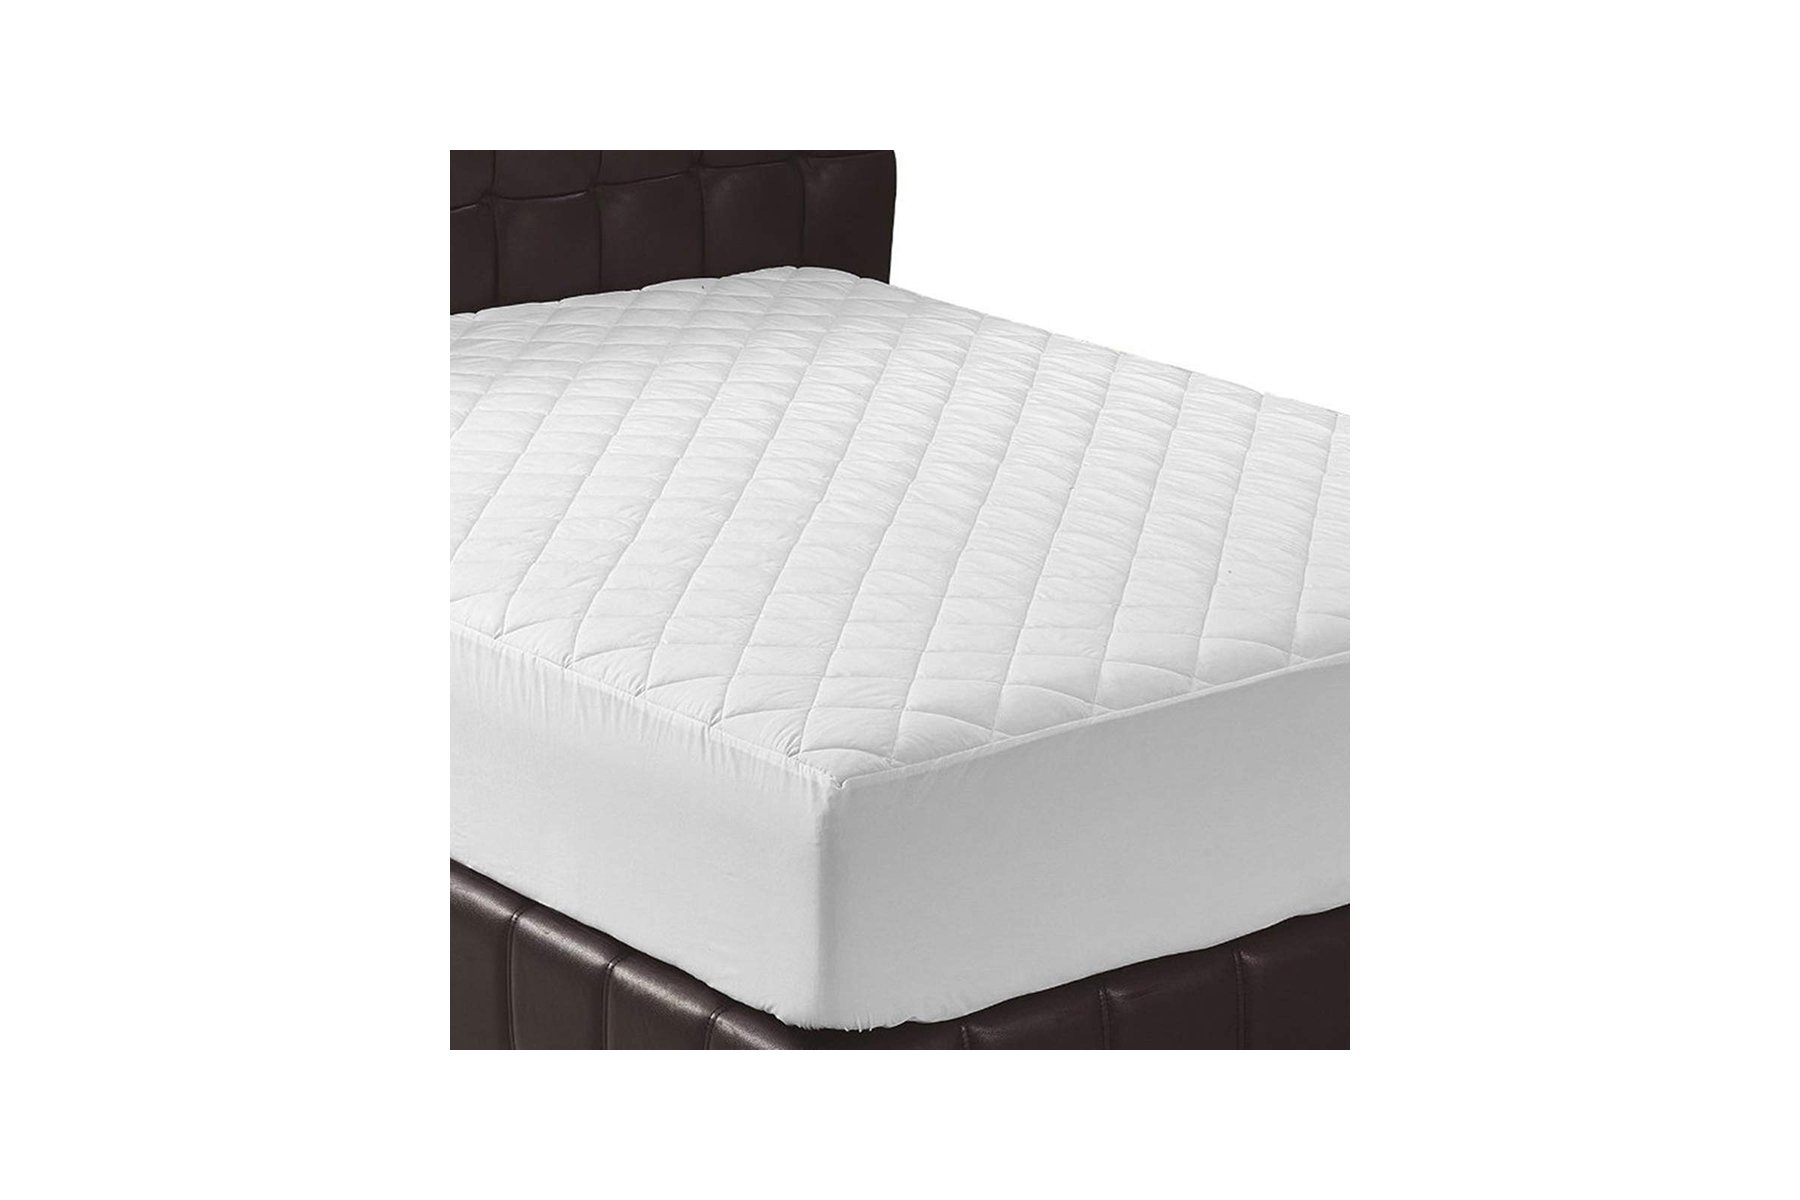 d832cbb37b 11 Top-Rated Mattress Pads That Are So Comfortable, You'll Feel Like You're  Sleeping on a Cloud